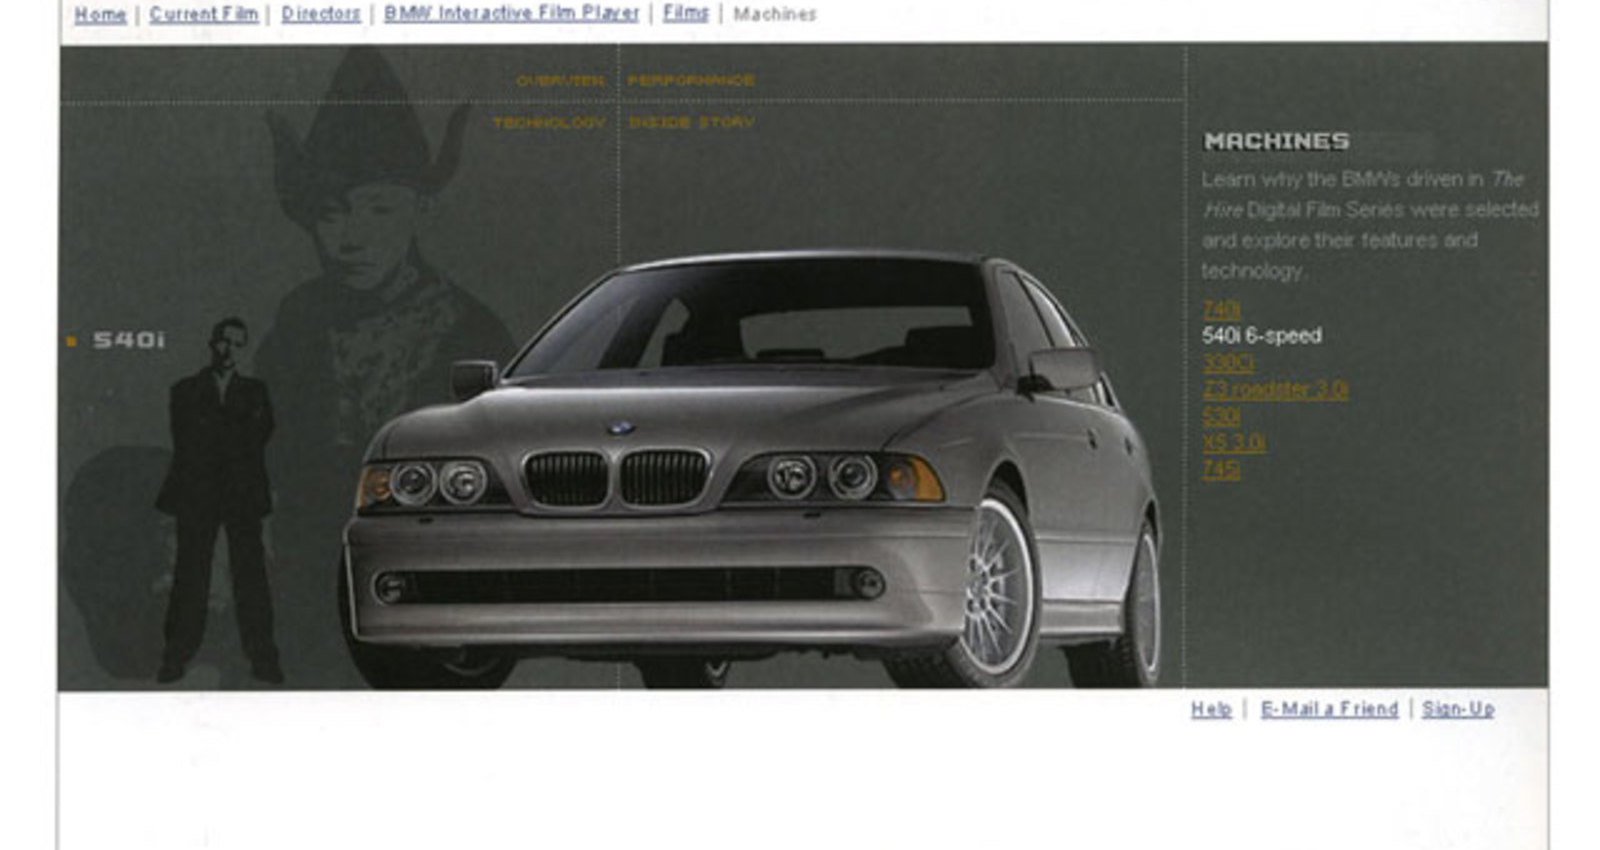 The Hire: BMW Films Web Site